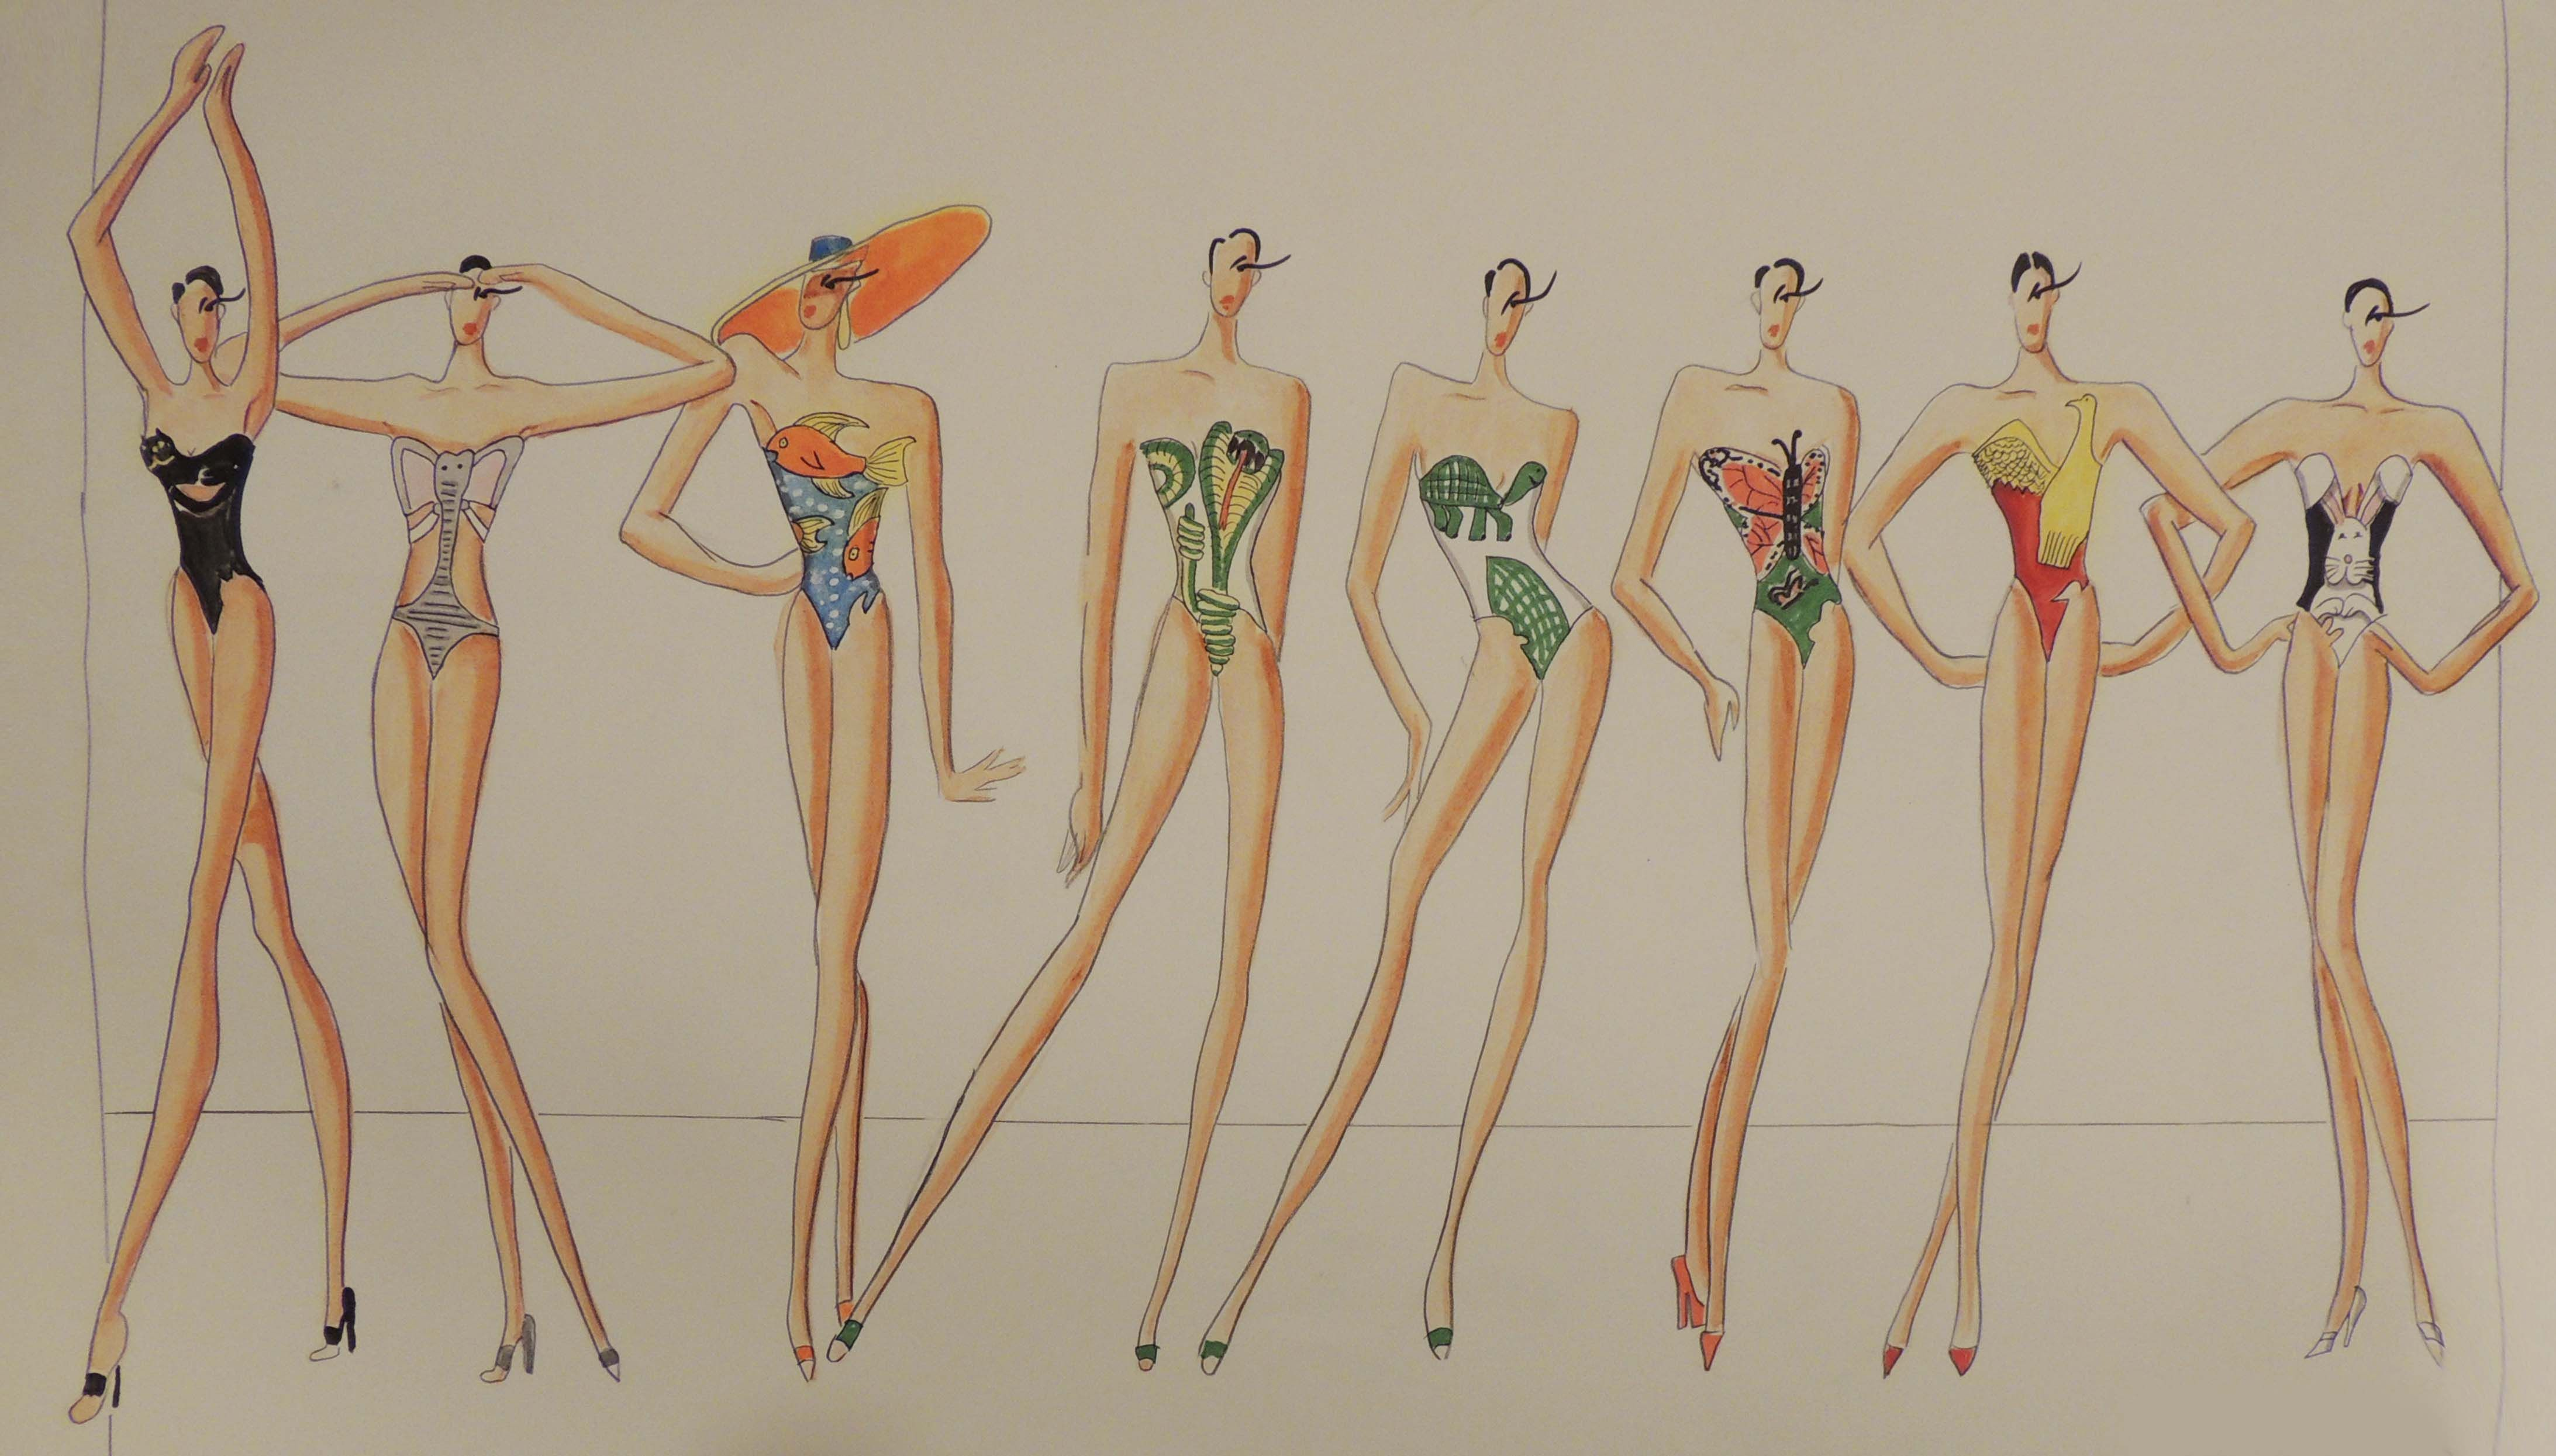 Bathing Suit designs with cutouts